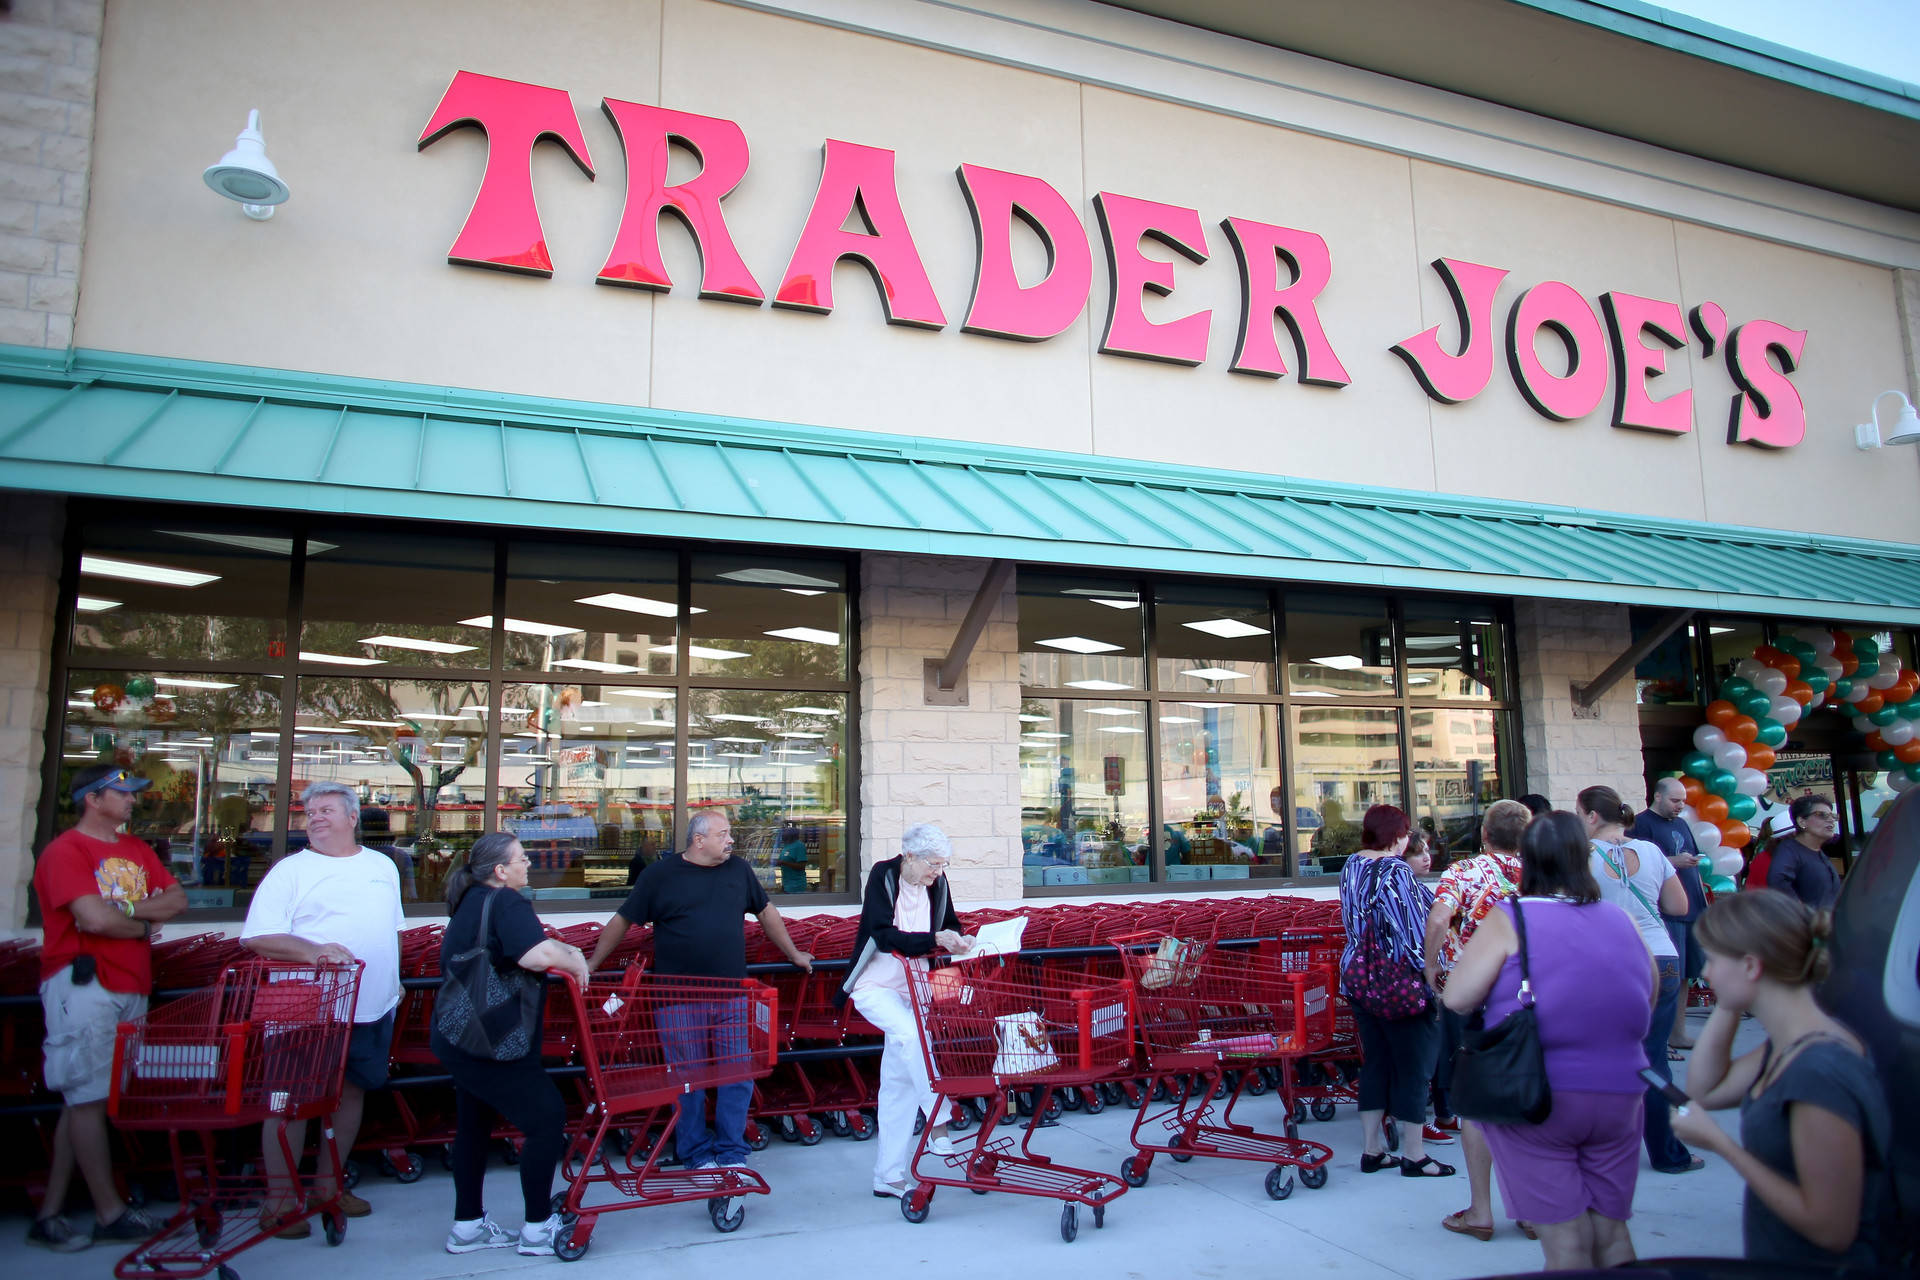 Court Says Trader Joe's Can Sue Over 'Pirated' Goods